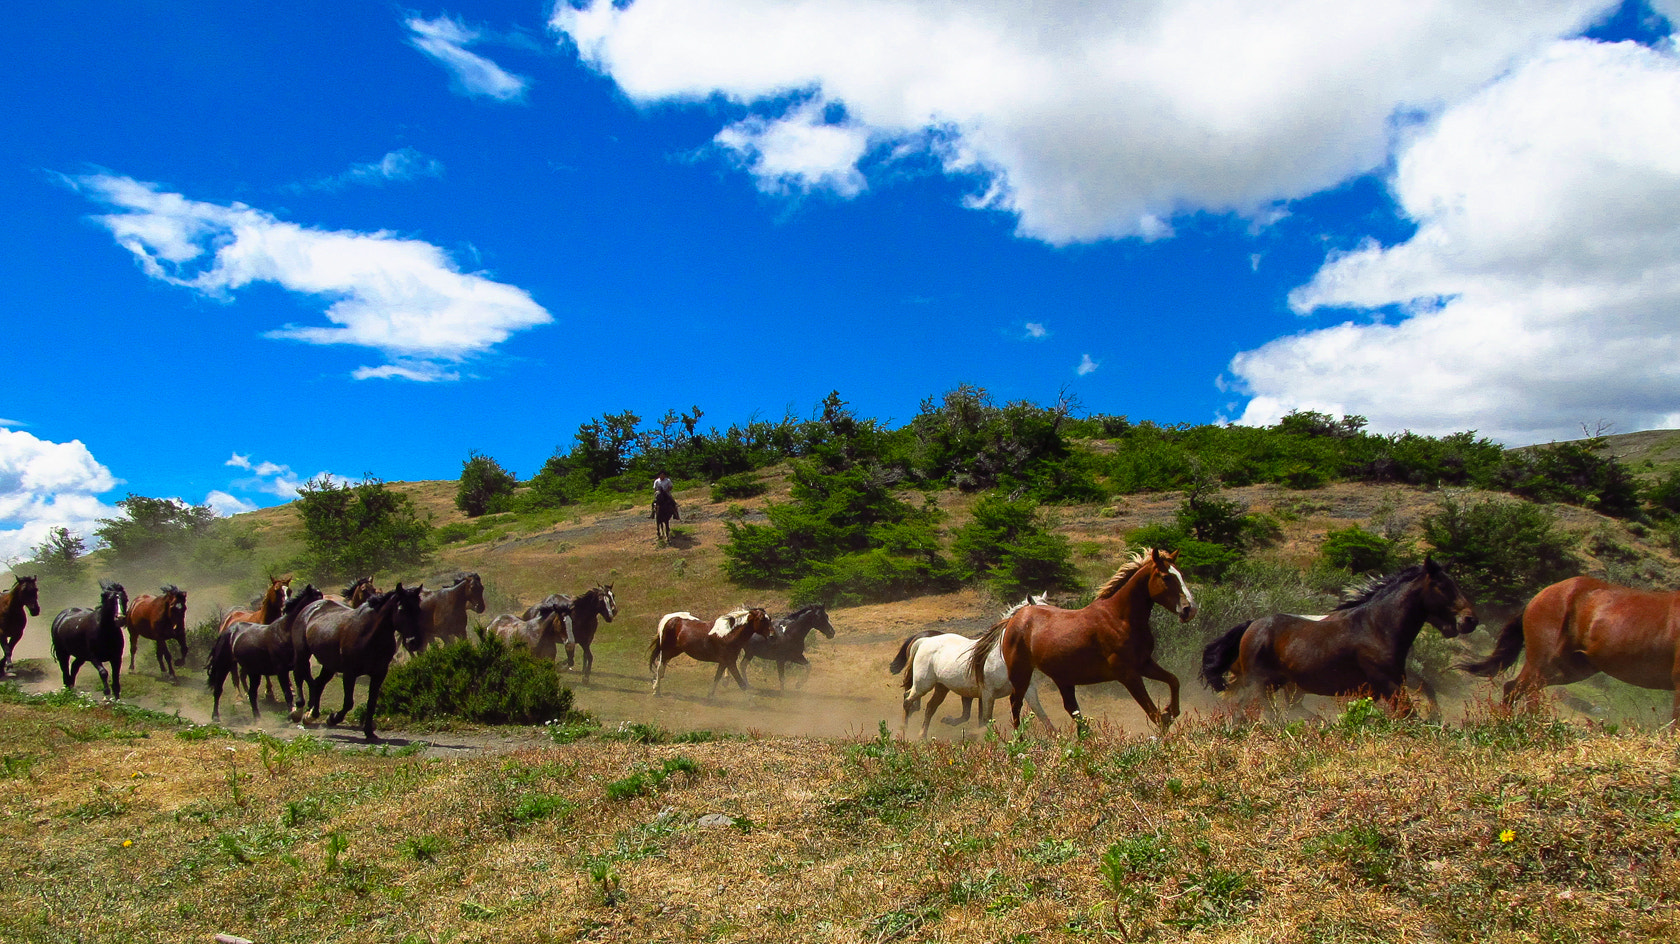 Photograph Wild Horses by eyals  on 500px